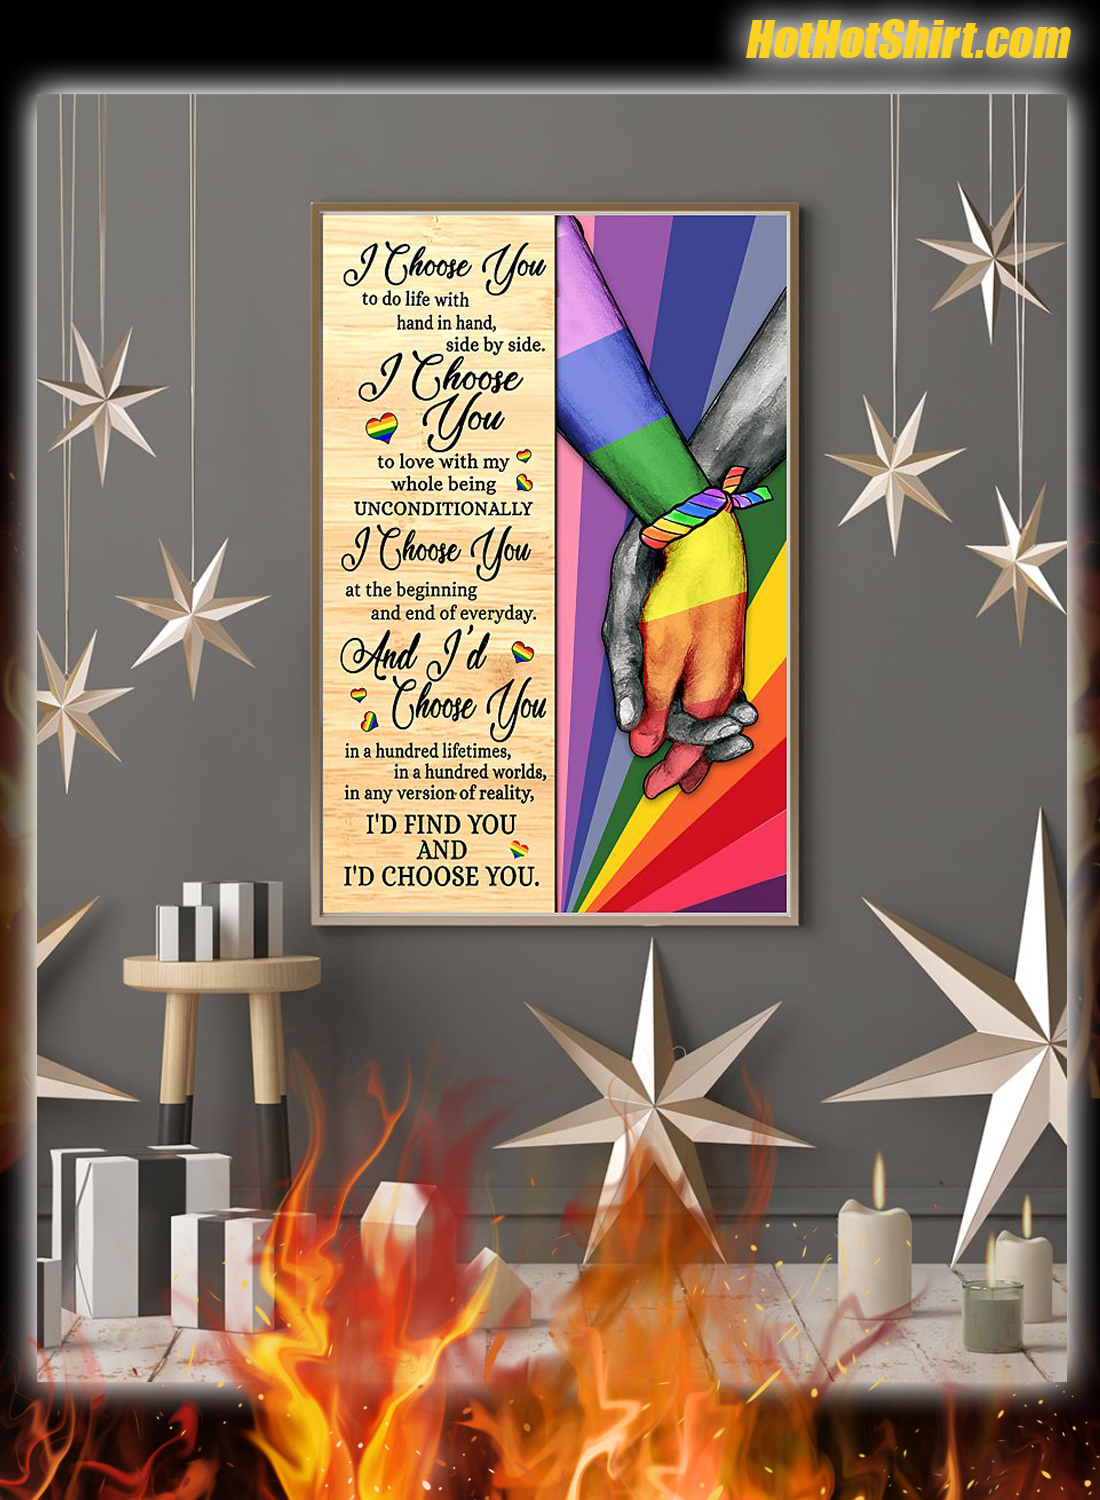 LGBT I Chose You To Life With Hand In Hand Side By Side Poster 3